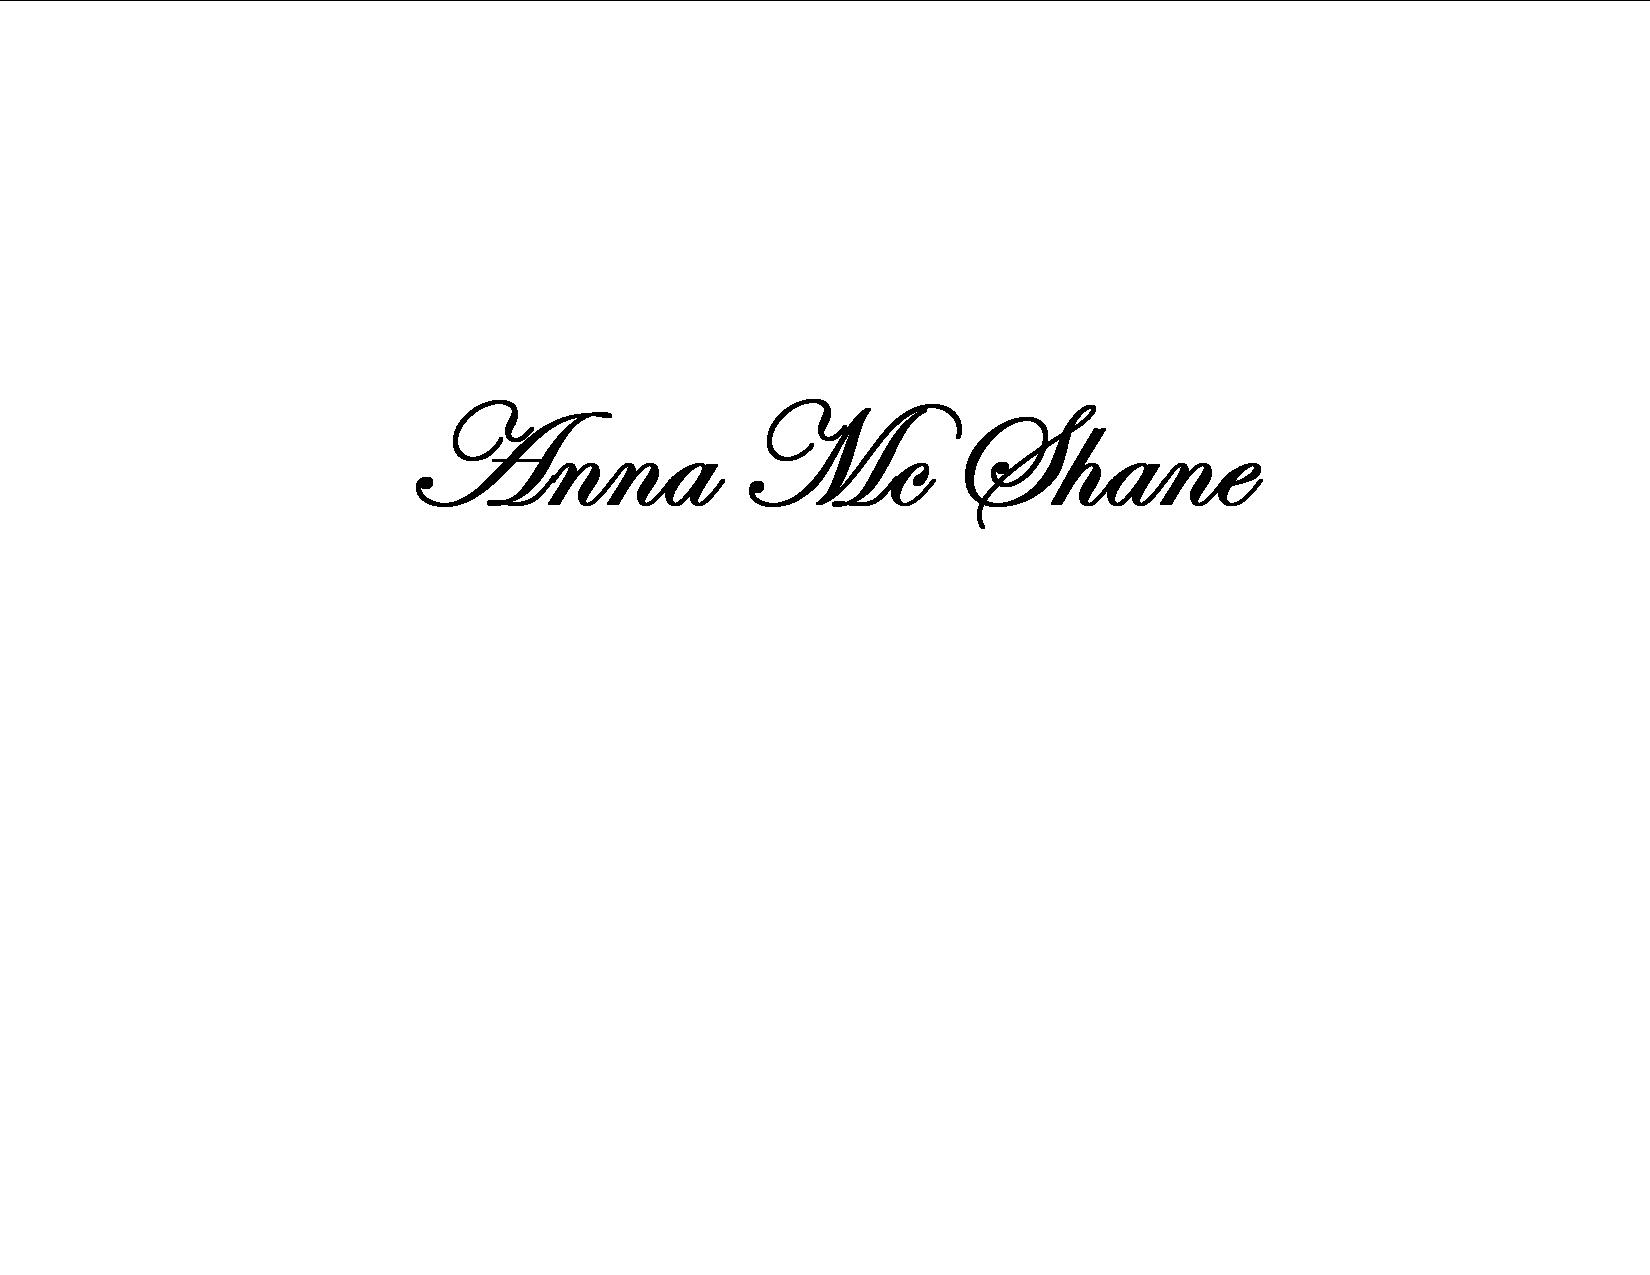 Anna Mc Shane Signature